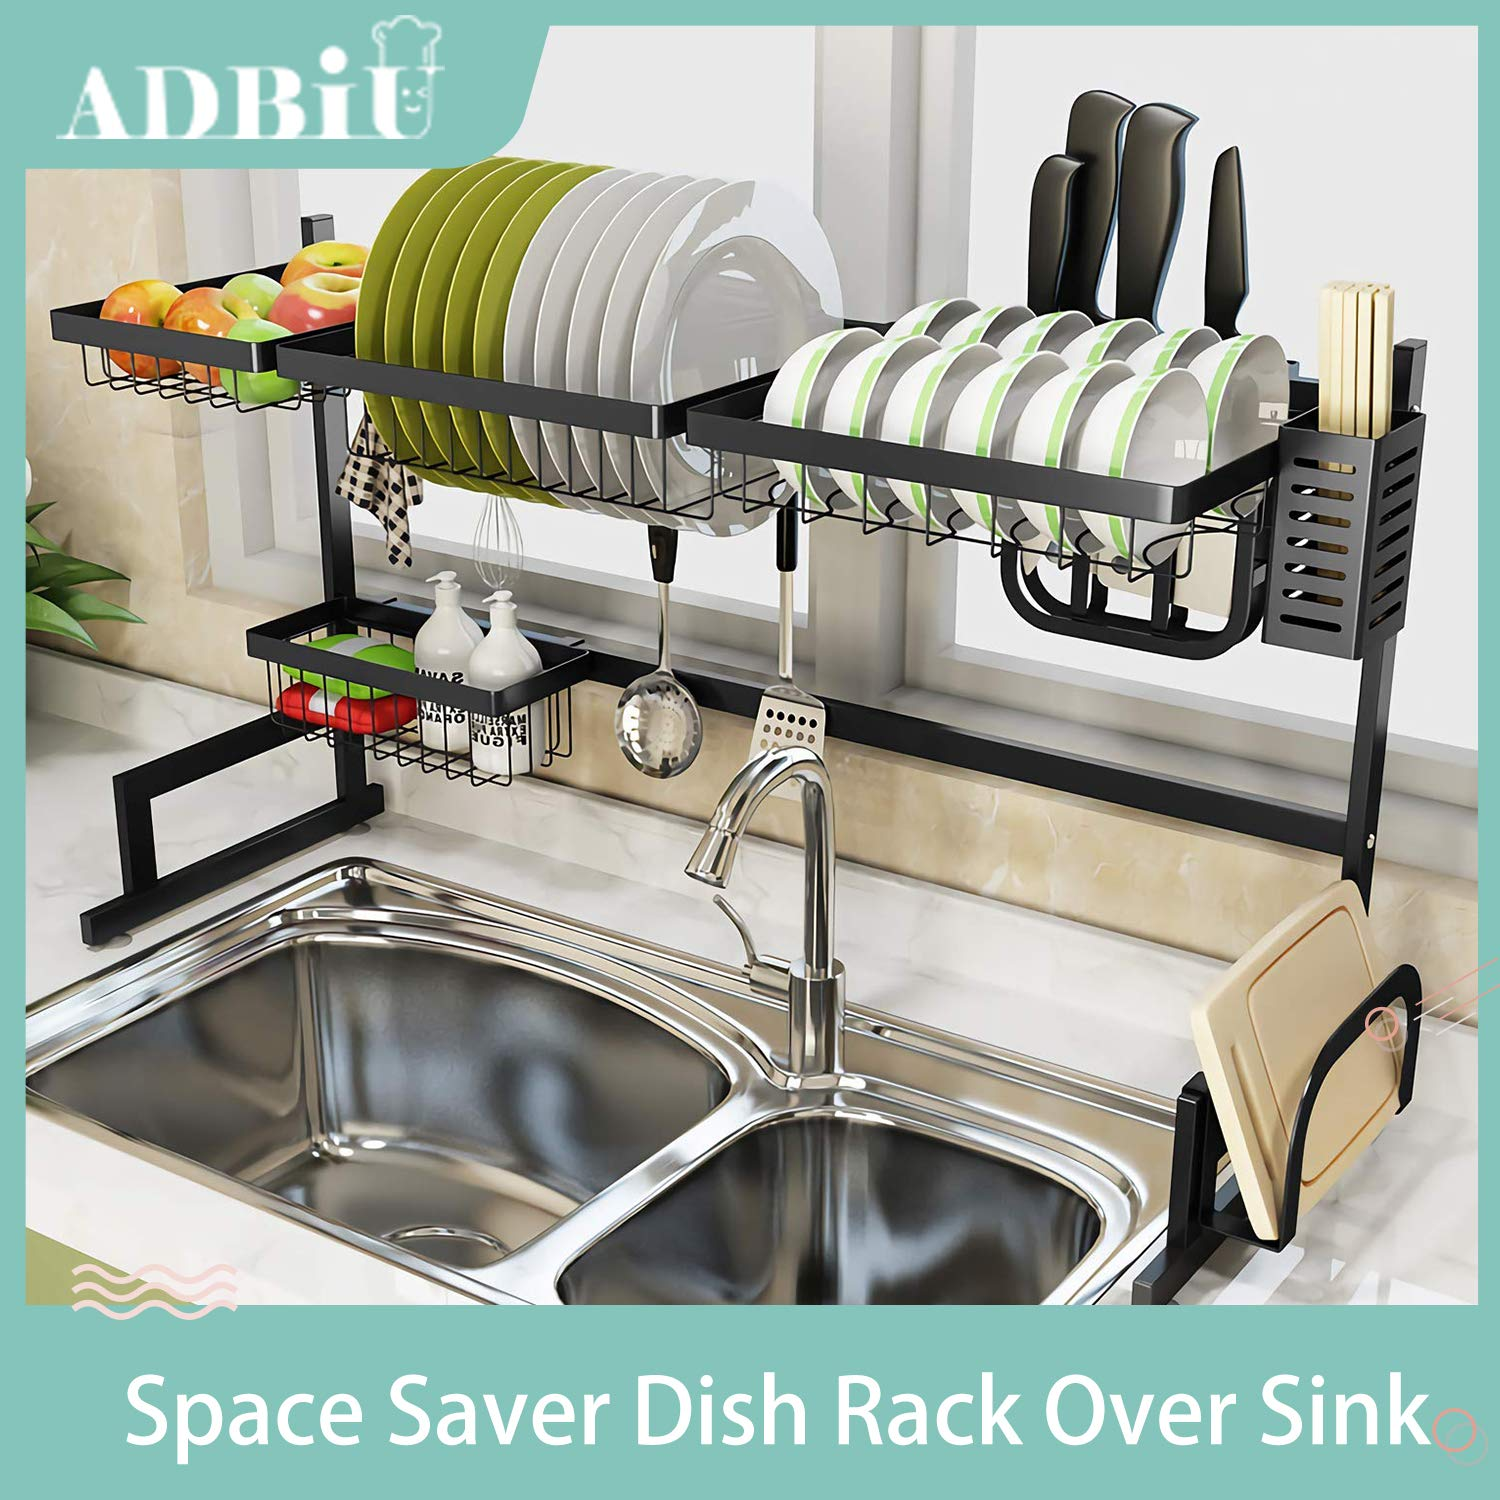 Dish Drying Rack Dish Drainer for Kitchen Sink Stainless Steel Over The Sink Shelf Storage Rack (Sink size ≤ 32.5 inch)(Black, 33.5X12.5X20.5inch)